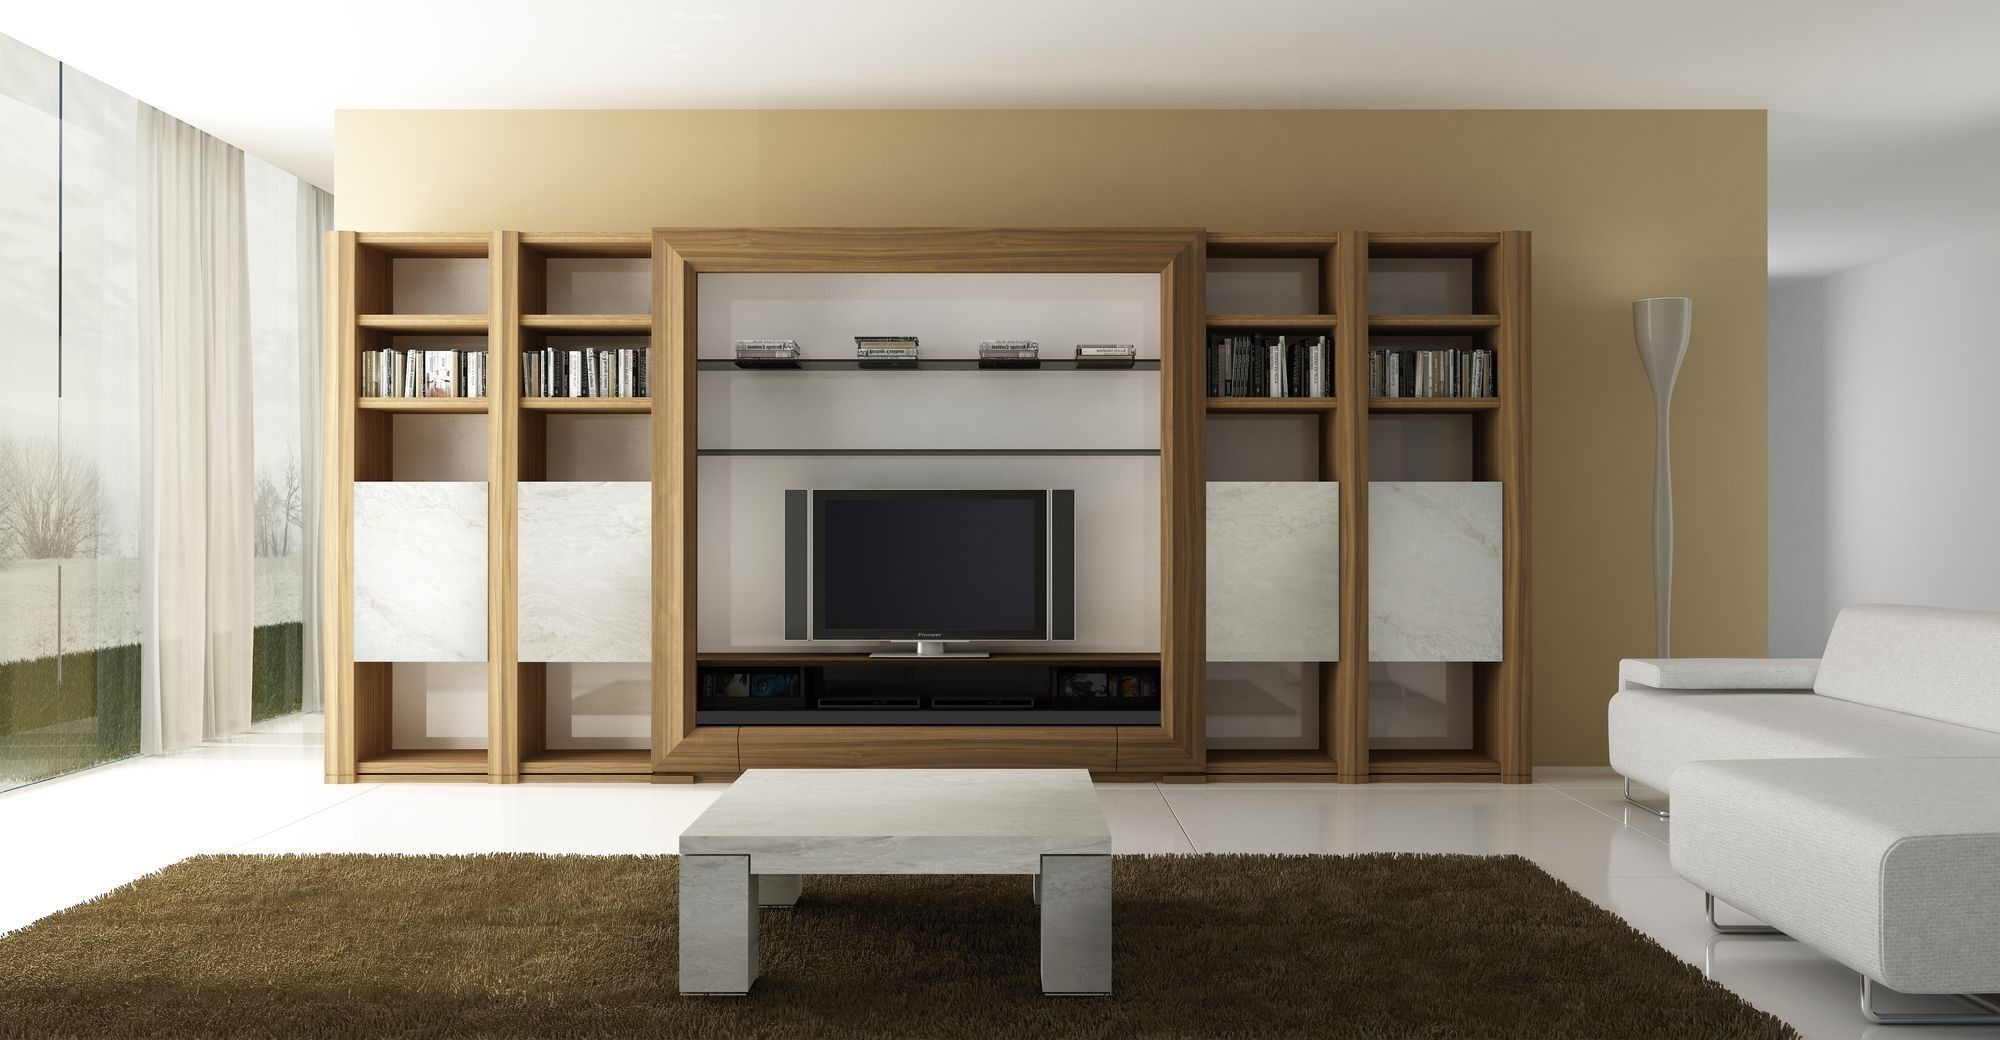 Modern Tv Storage Contemporary Interior Storage Design With Modern Wall Units